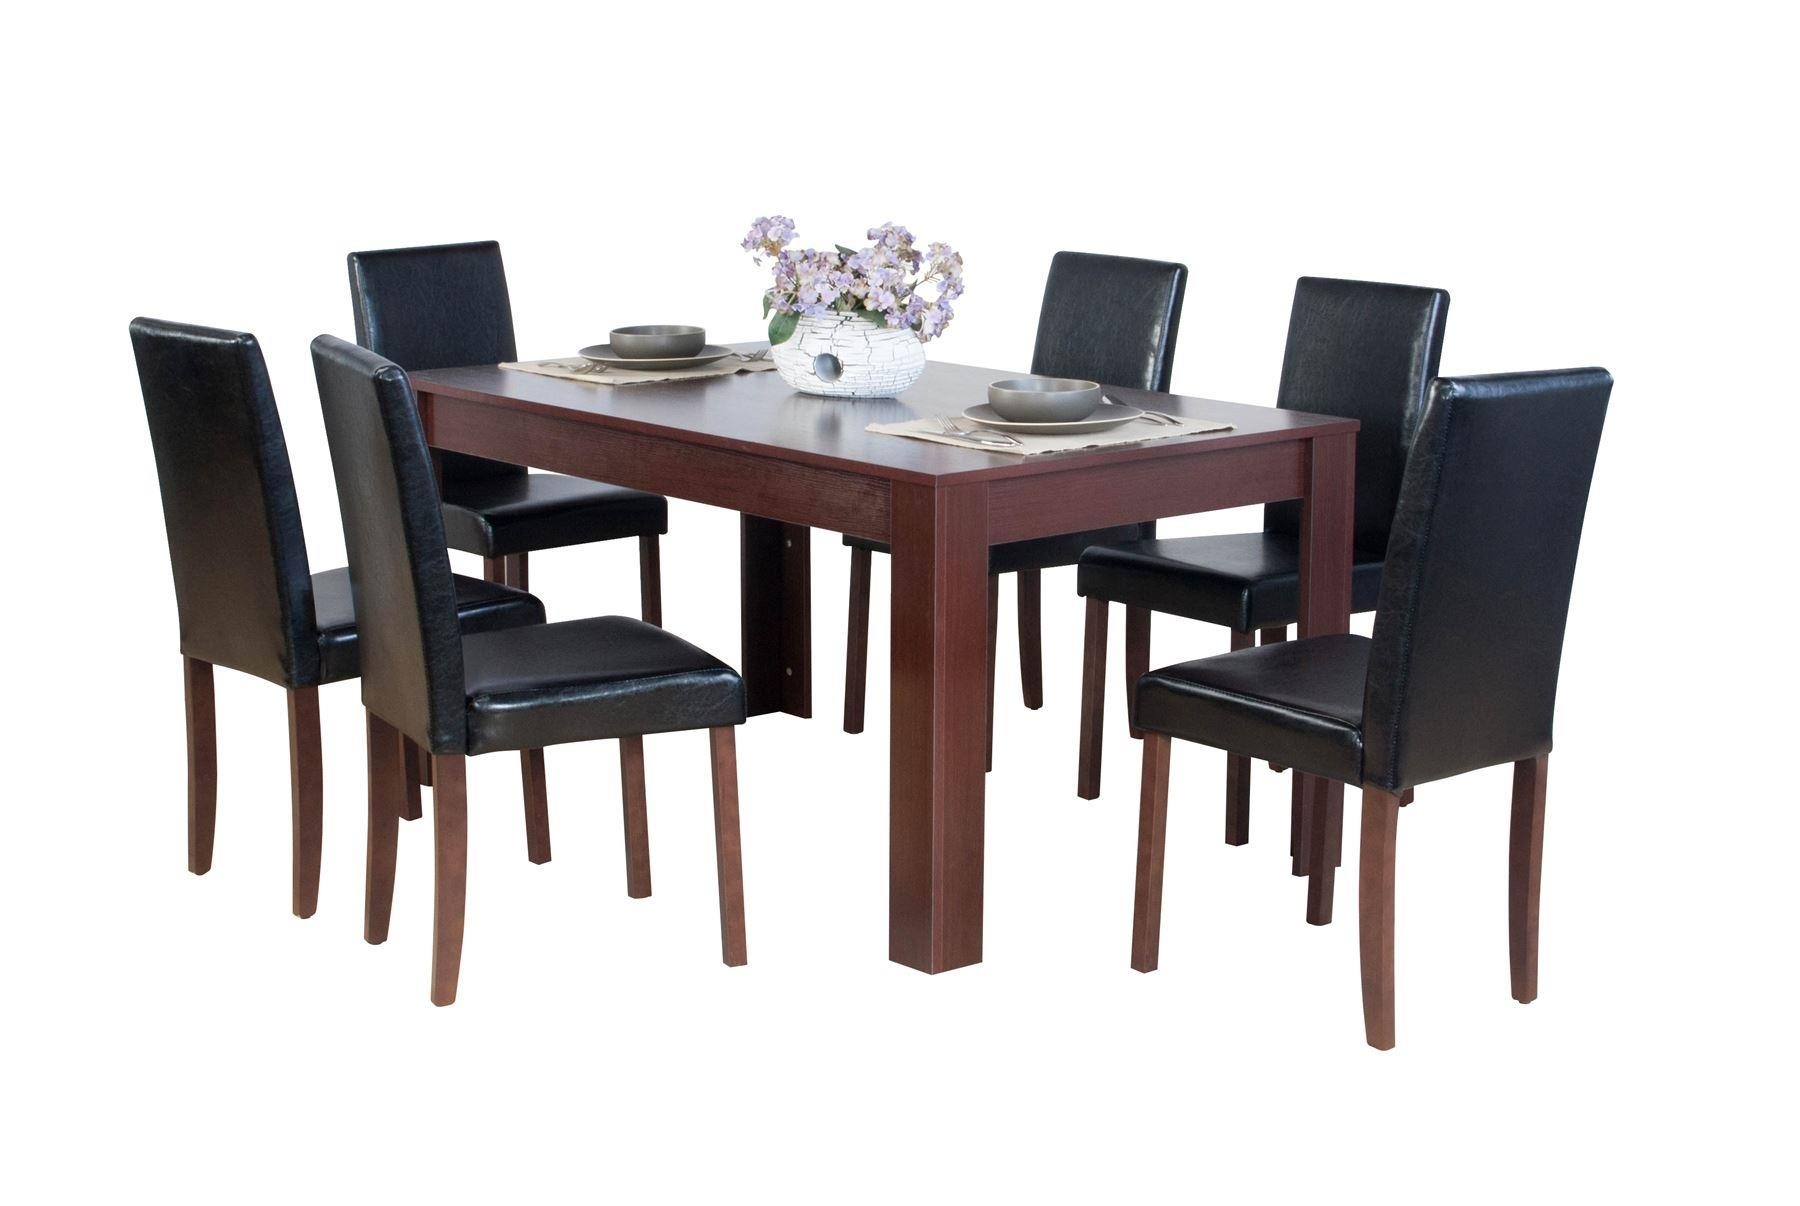 6 chair dining tables